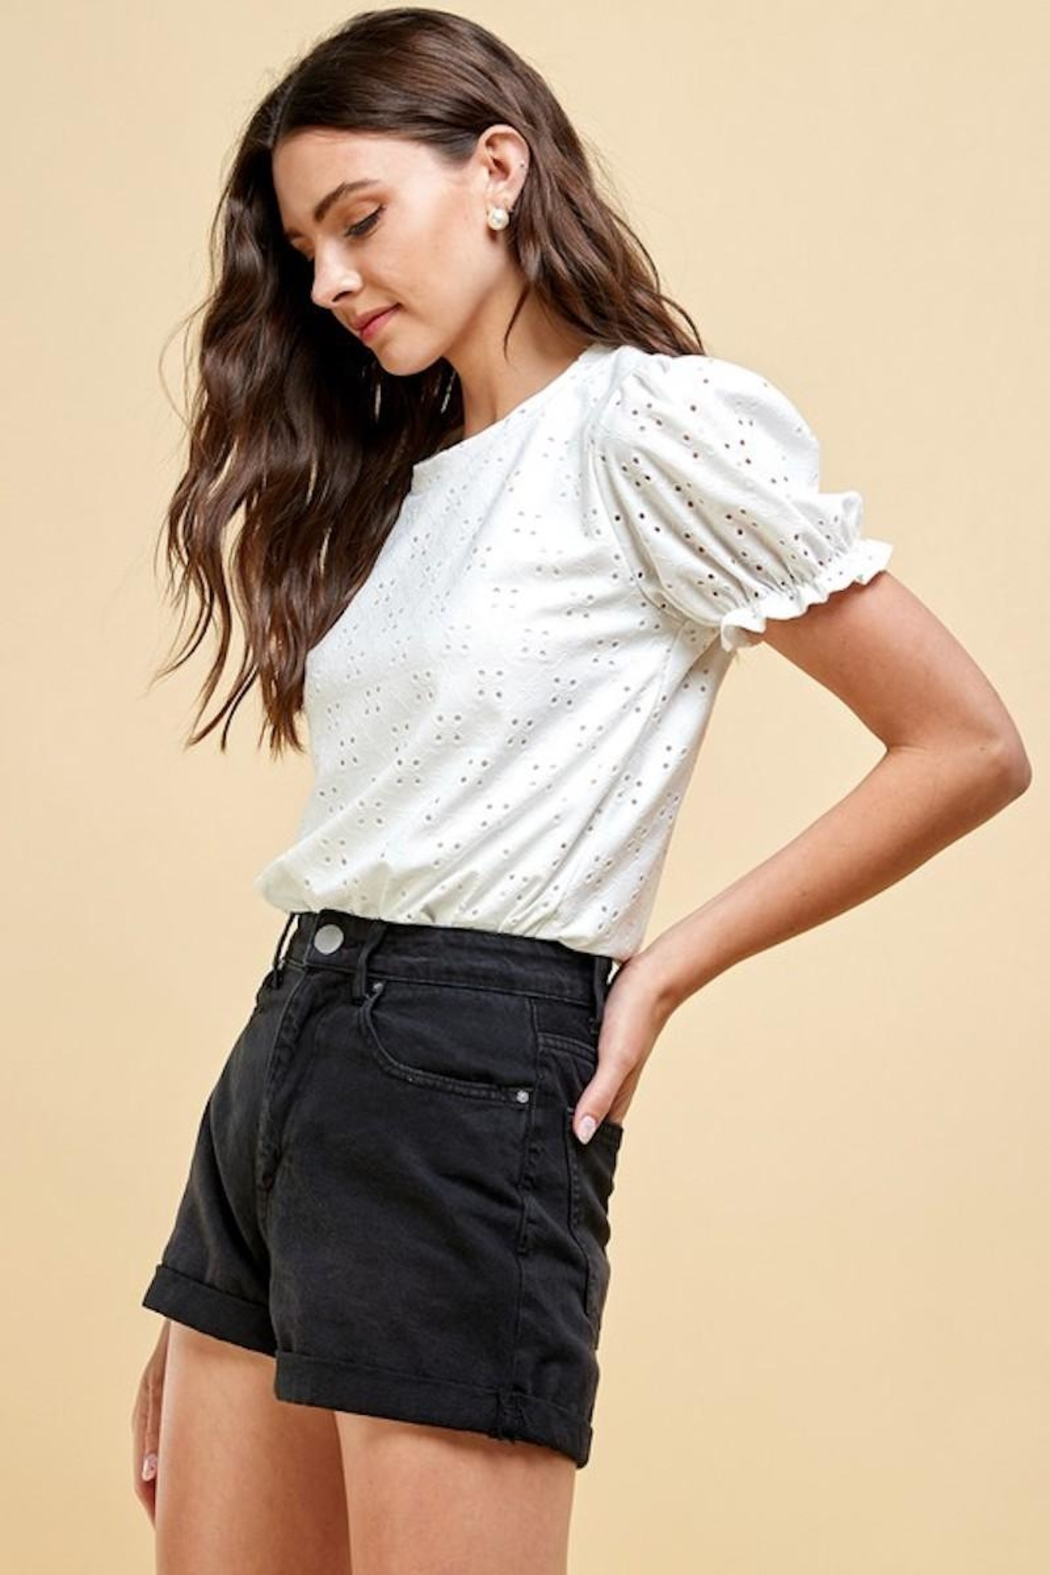 Les Amis Emily's Eyelet Top In White - Front Full Image